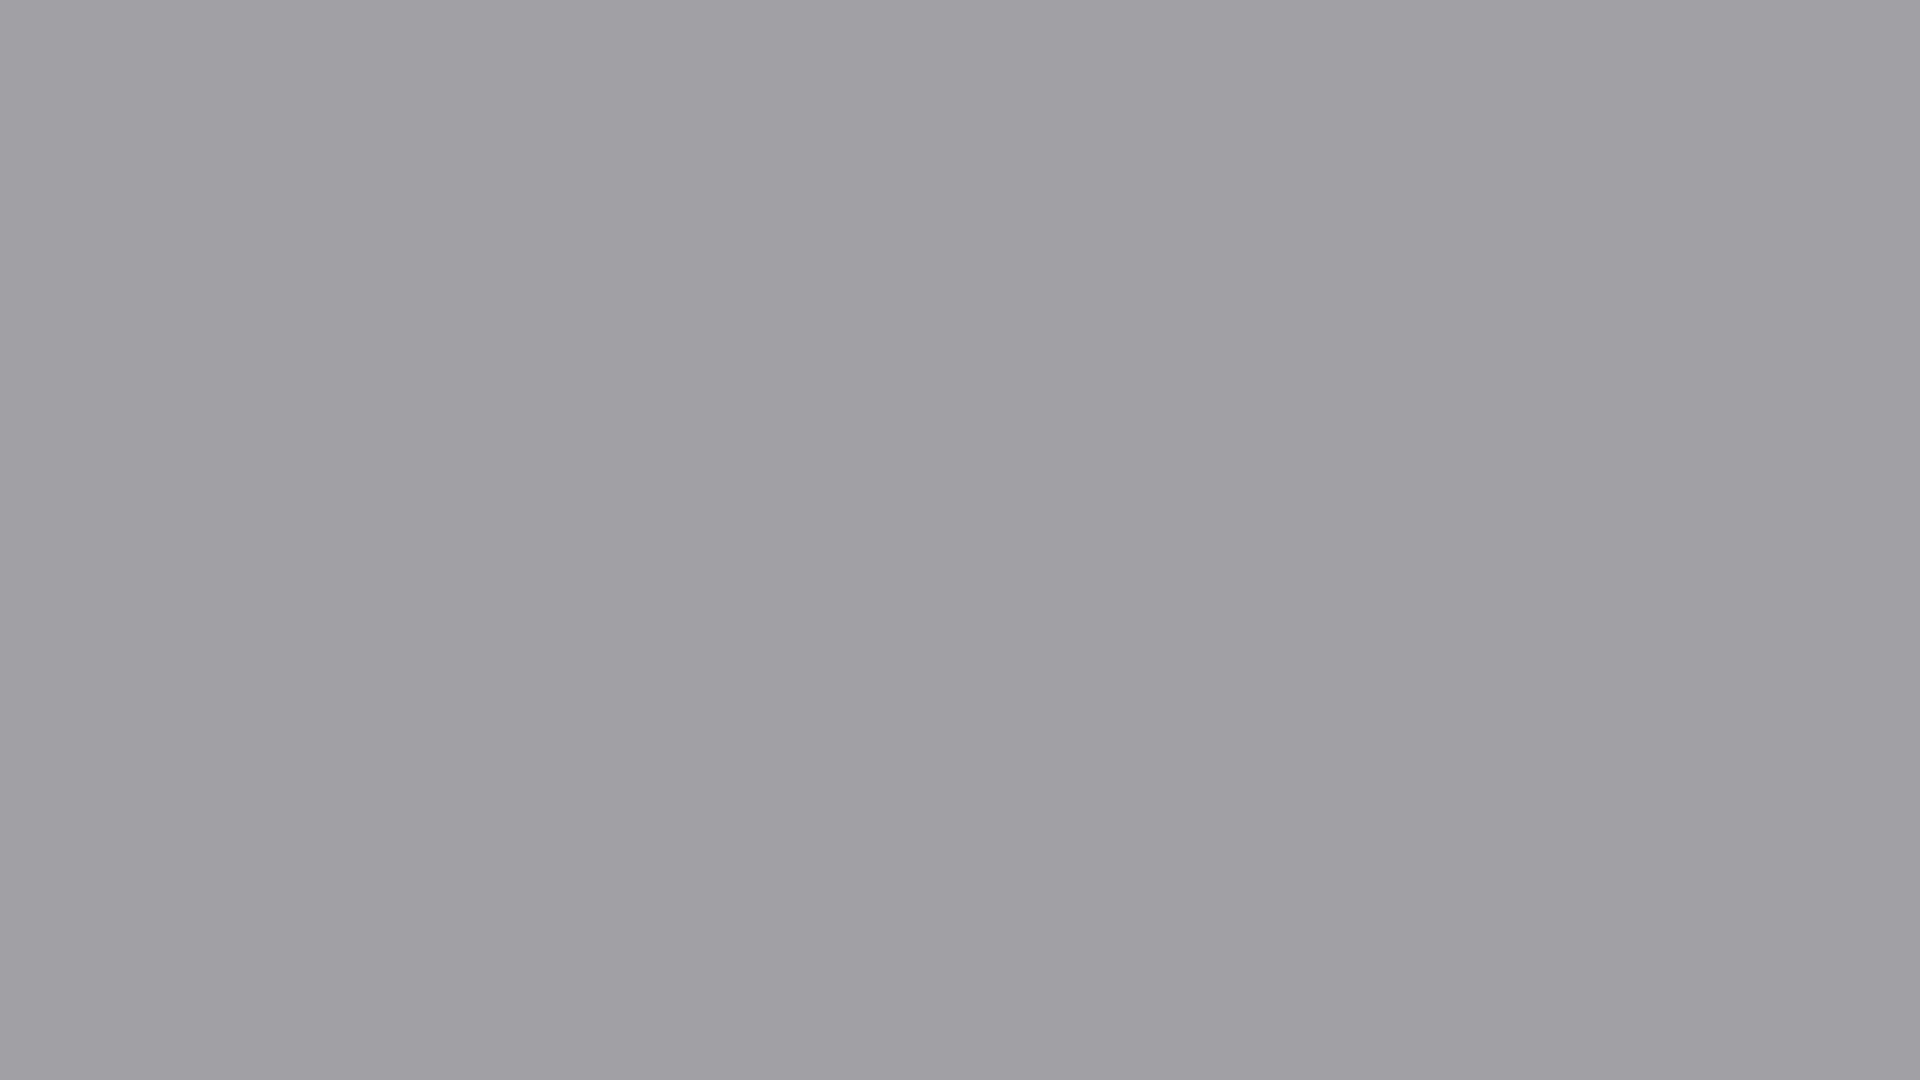 plain_vmware_gray2